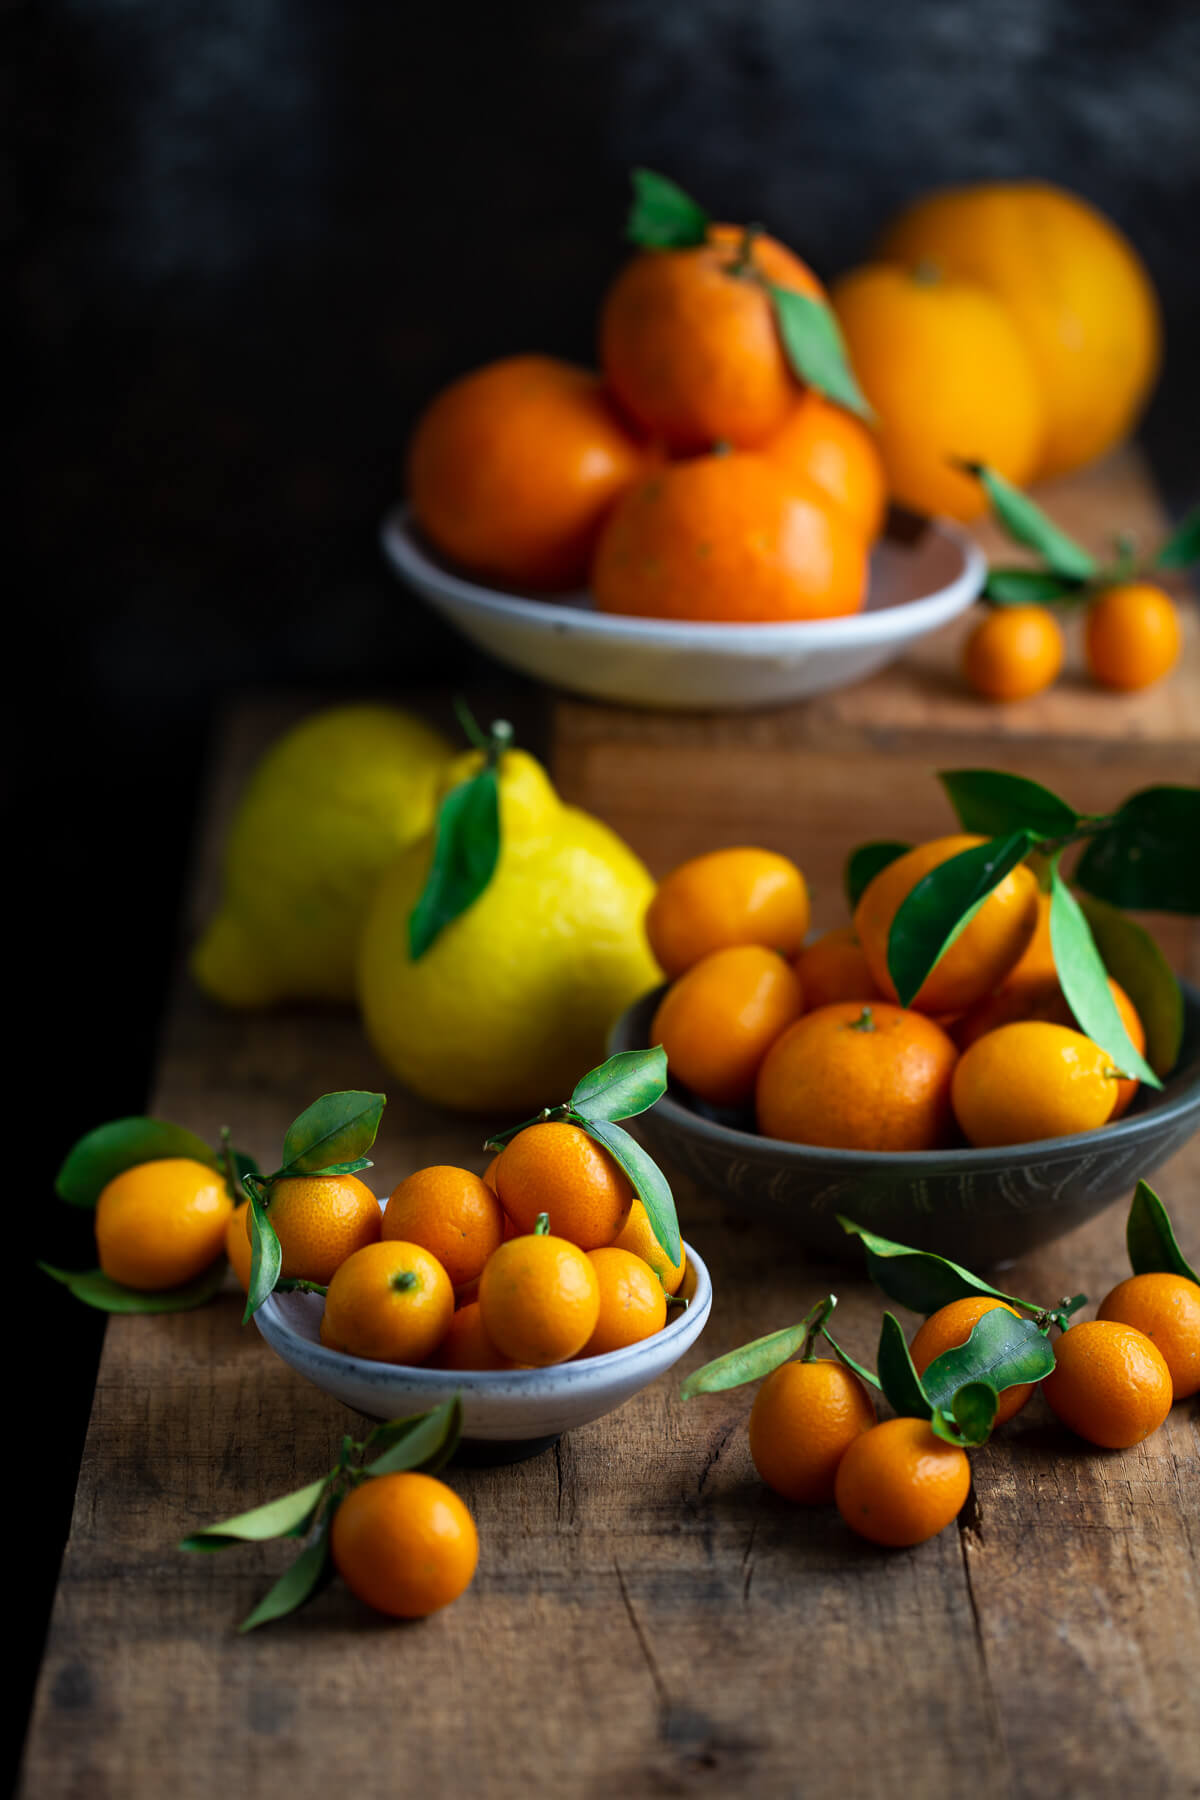 Several bowls of citrus on a wooden tabletop.